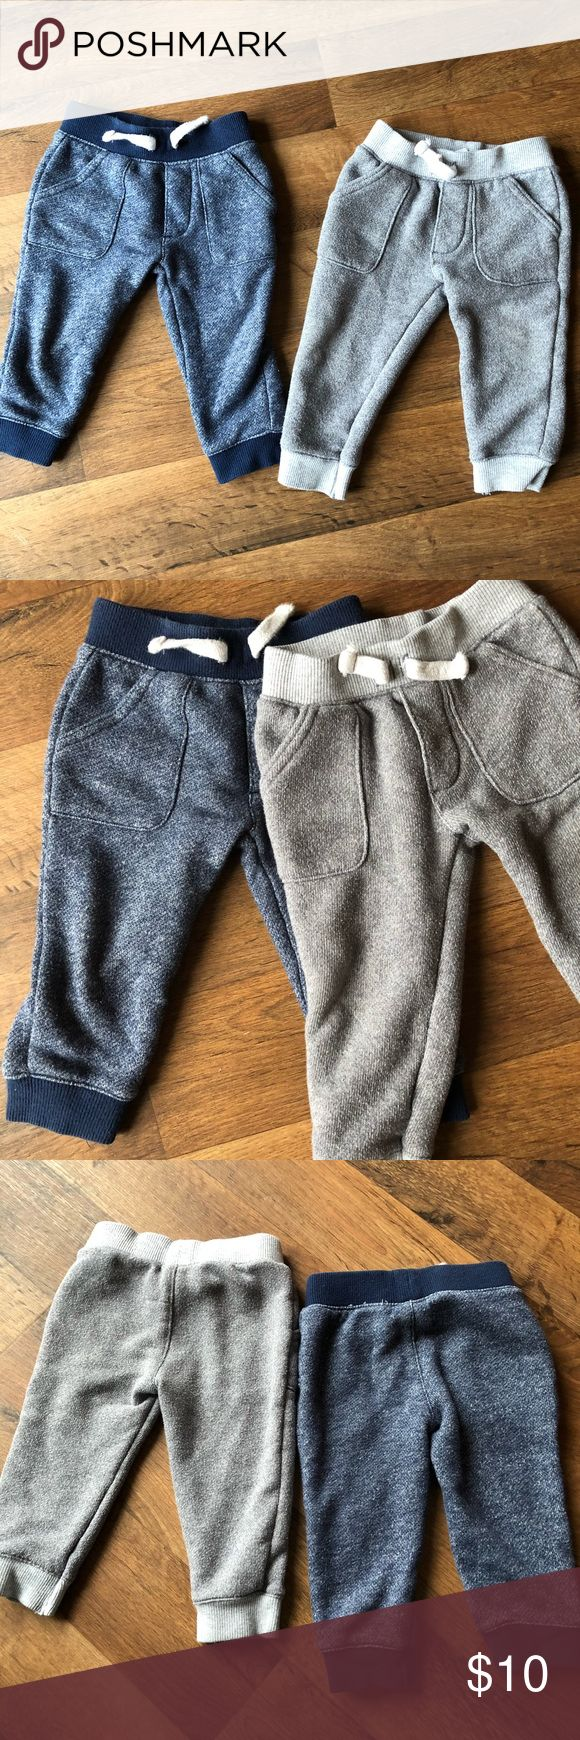 Baby Joggers 2 pair of baby boy joggers. 12 months. One gray & one navy. Have been worn but still good condition. Carter's Bottoms Sweatpants & Joggers #carterbabyboy